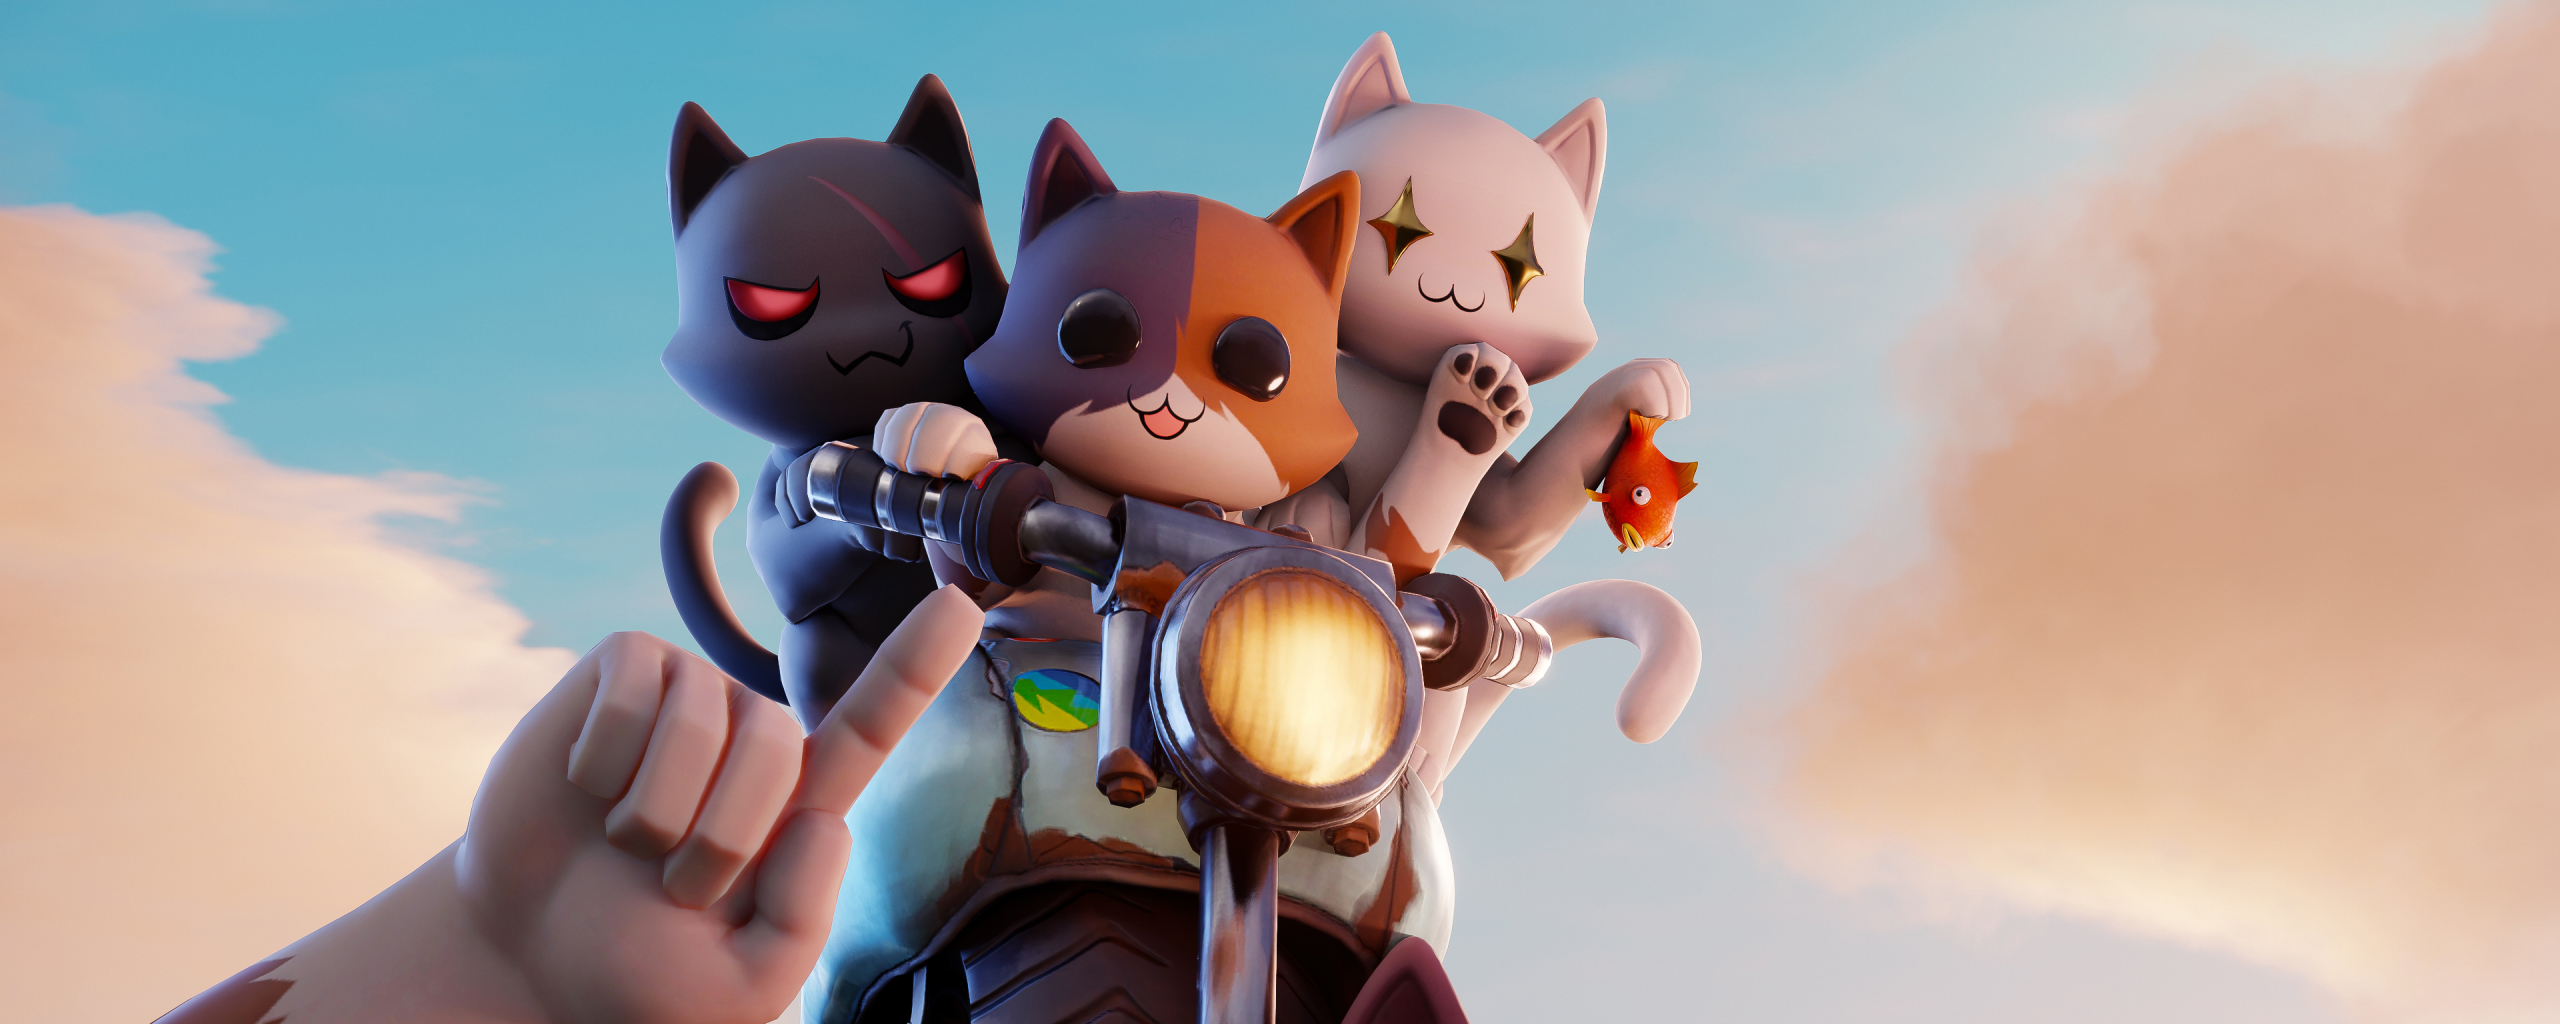 2560x1024 Meowscles Robot Kit Fortnite 2560x1024 Resolution Wallpaper Hd Games 4k Wallpapers Images Photos And Background